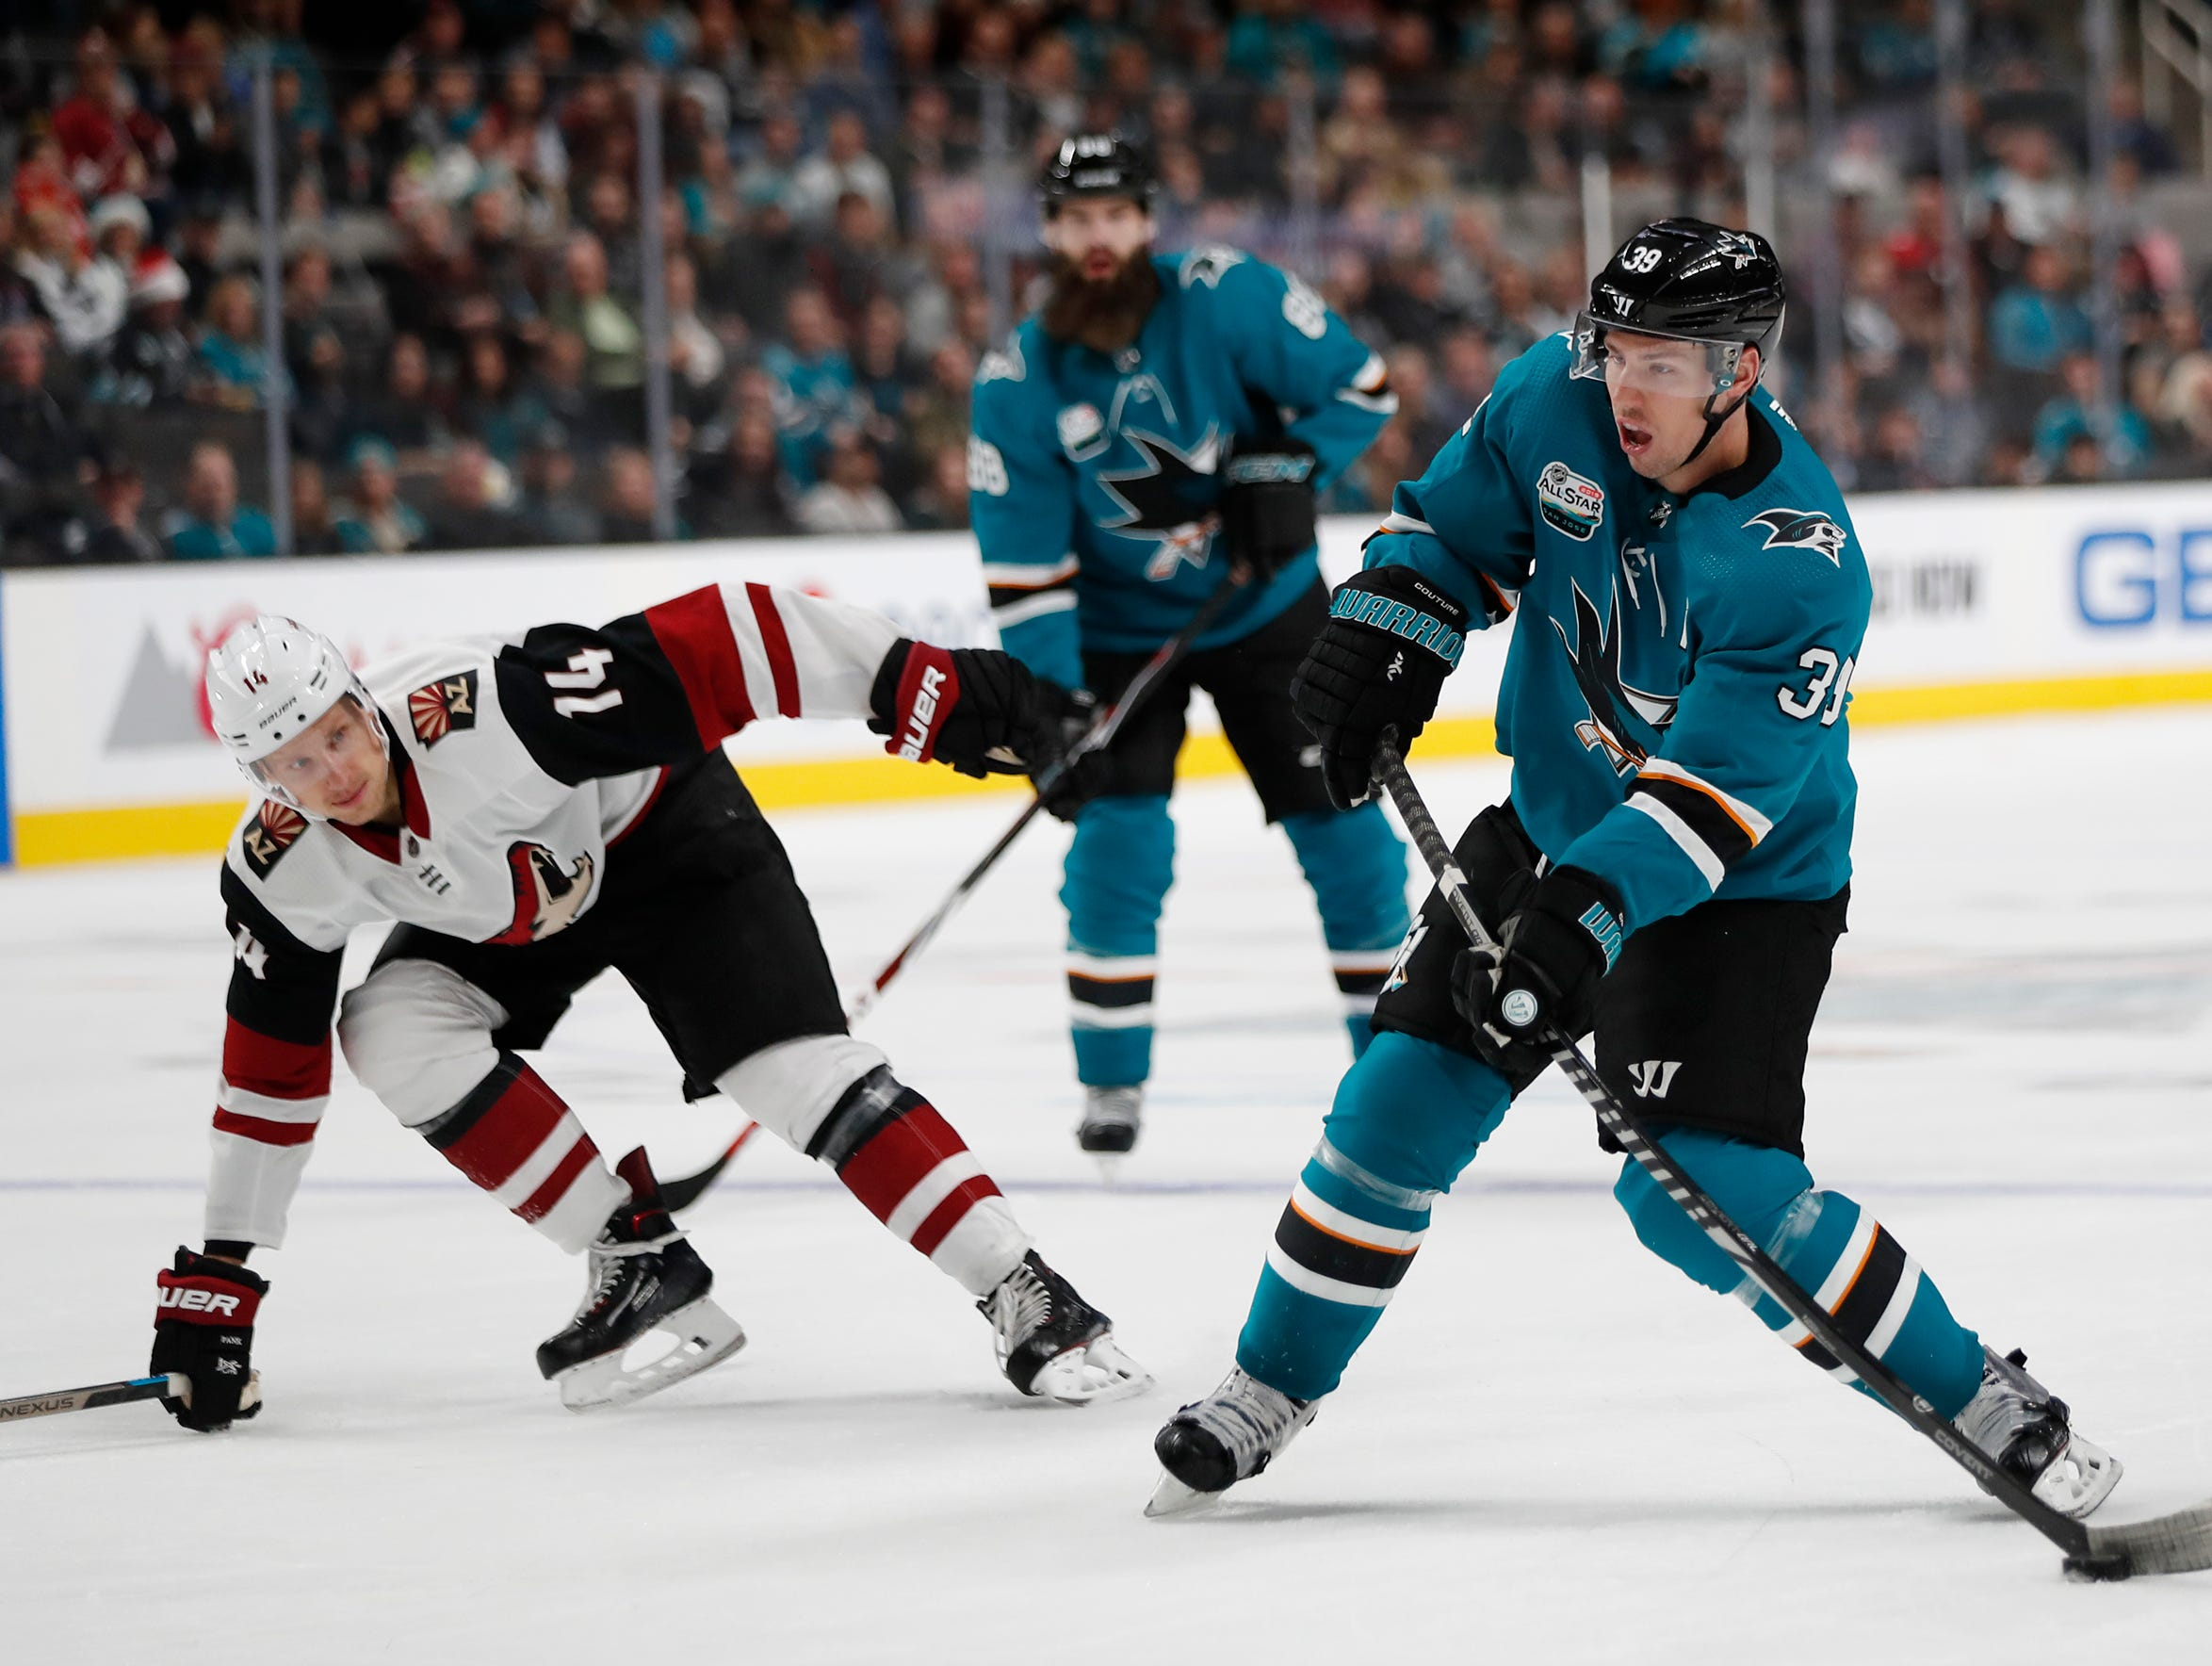 San Jose Sharks' Logan Couture (39) shoots the puck against the Arizona Coyotes' Richard Panik (14) in the first period of an NHL hockey game in San Jose, Calif., Sunday, Dec. 23, 2018. (AP Photo/Josie Lepe)